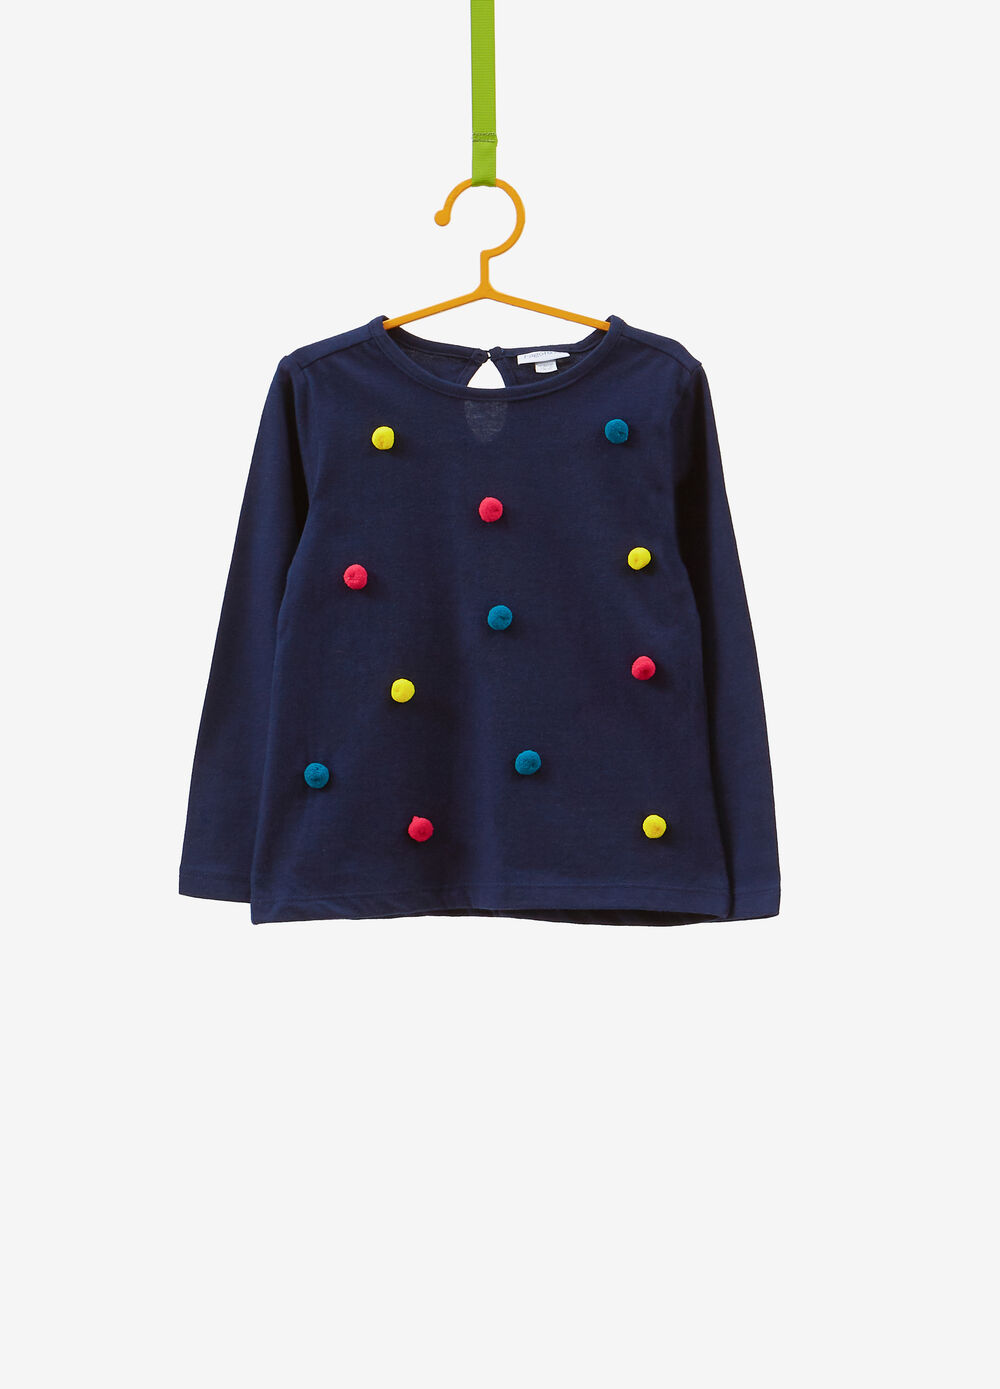 T-shirt in 100% cotton with pompoms